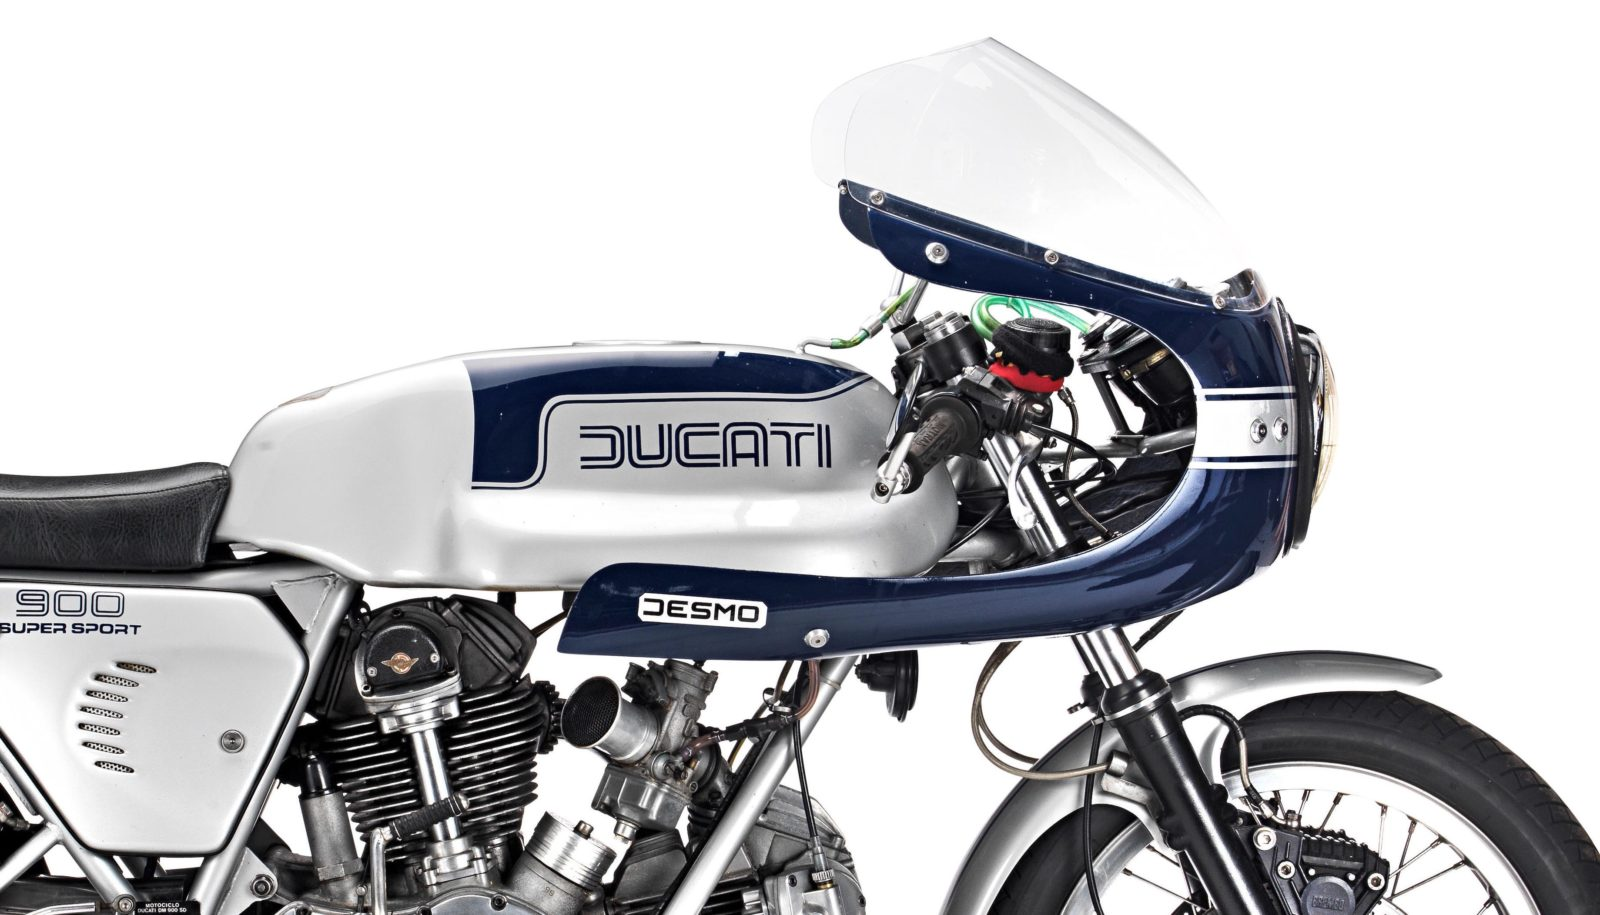 Ducati 900SS – A Thoroughbred Italian Superbike From The 1970s